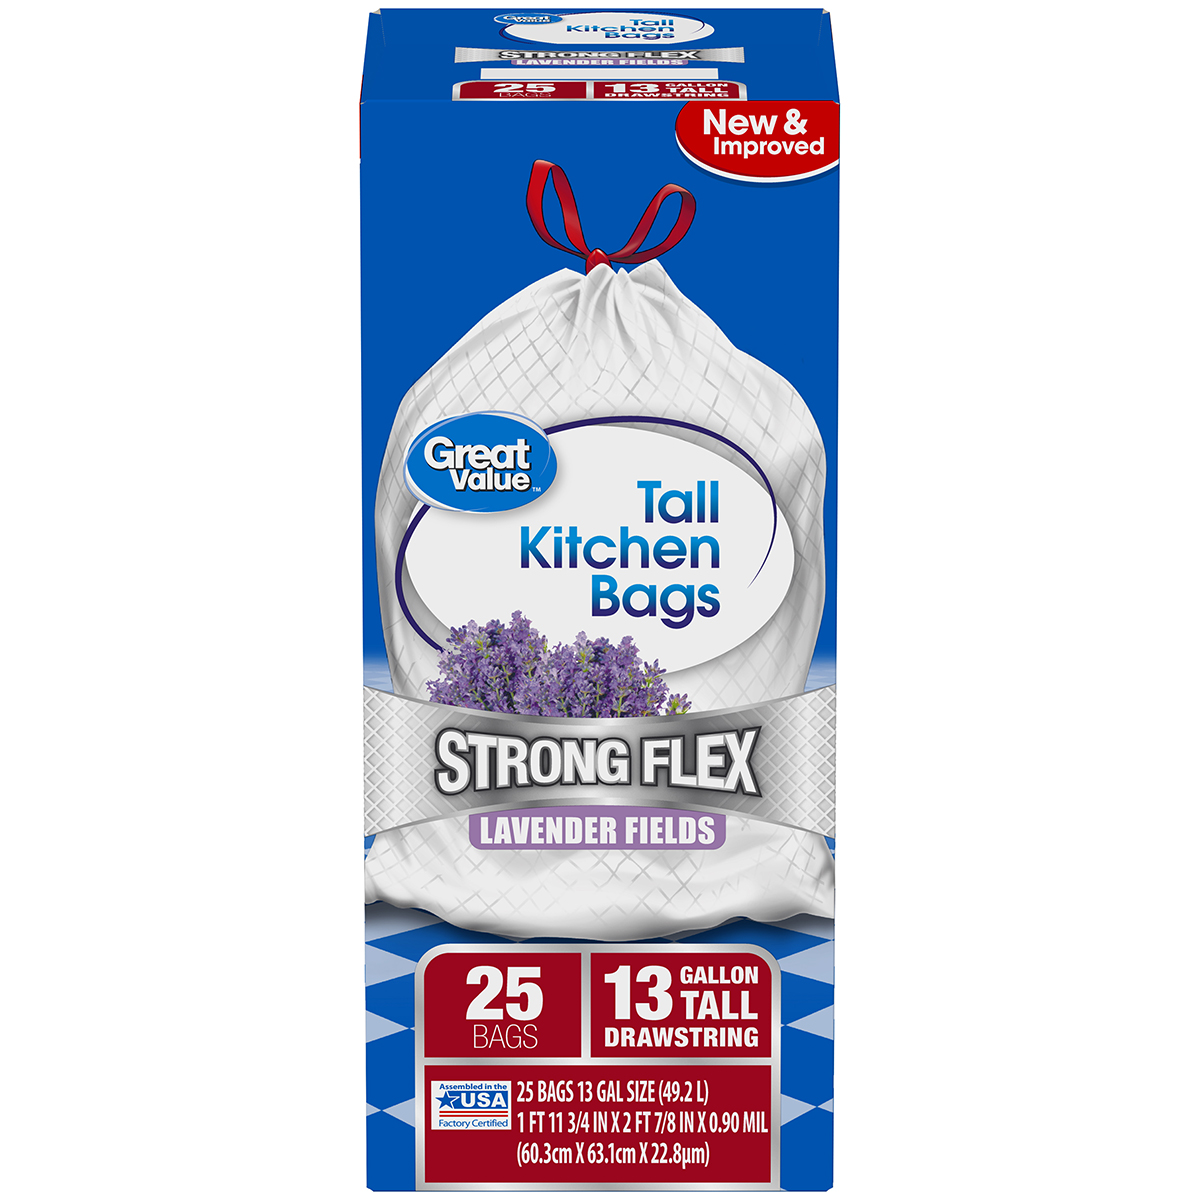 Great Value Strong Flex Tall Kitchen Drawstring Trash Bags, Island Oasis, 13 Gallon, 25 Count